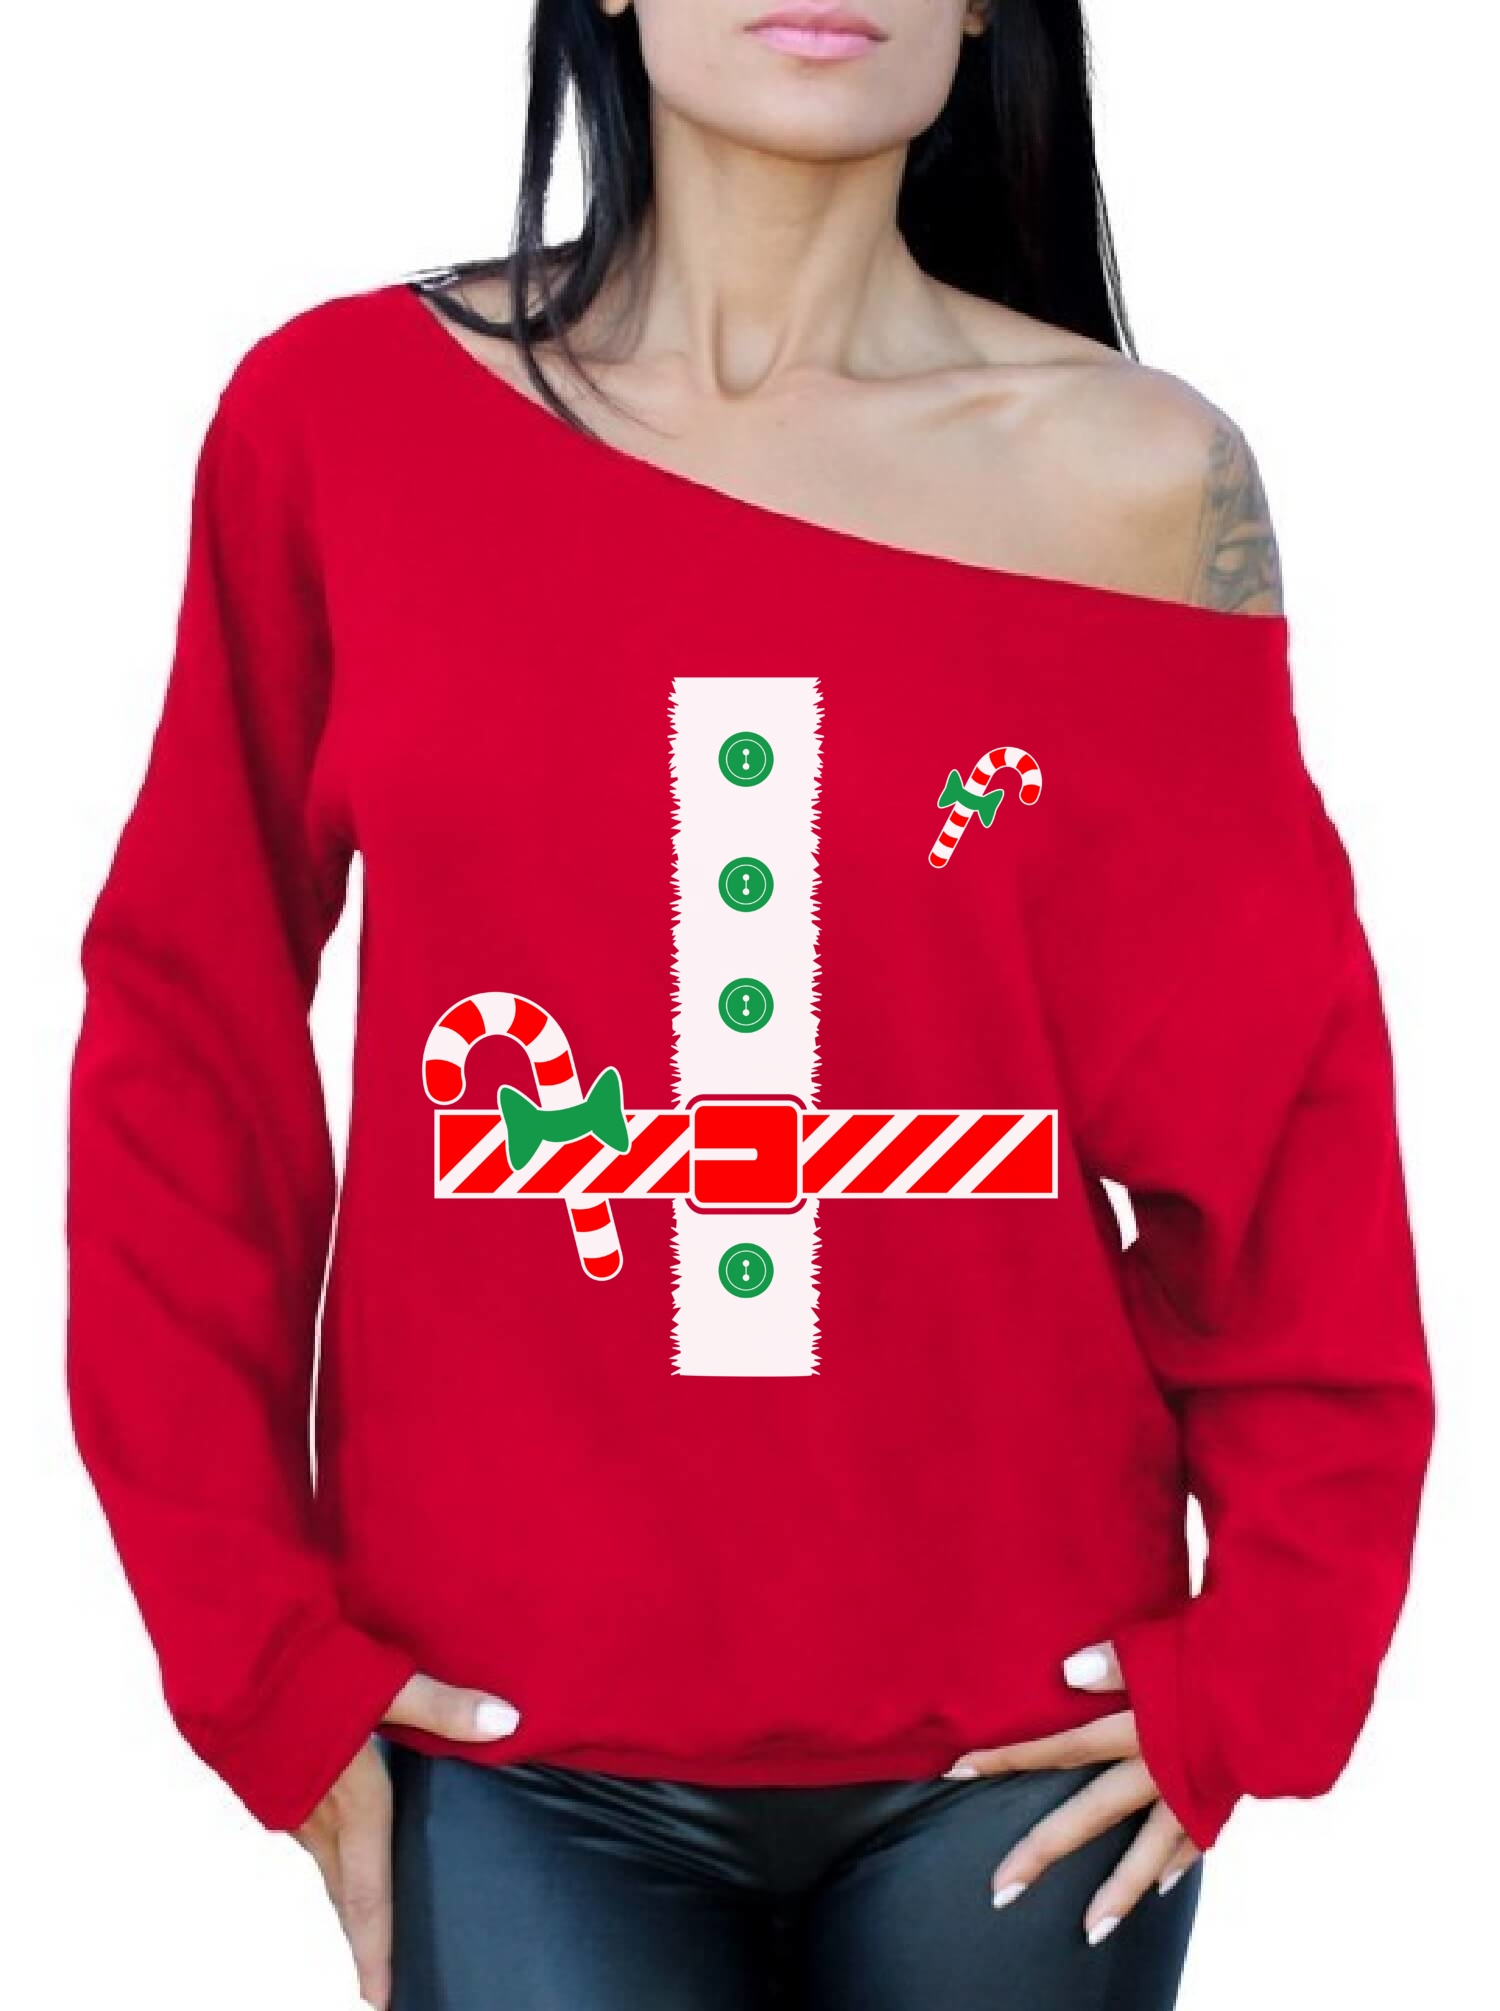 picture 5 of 5 - Ugly Christmas Sweater Ebay